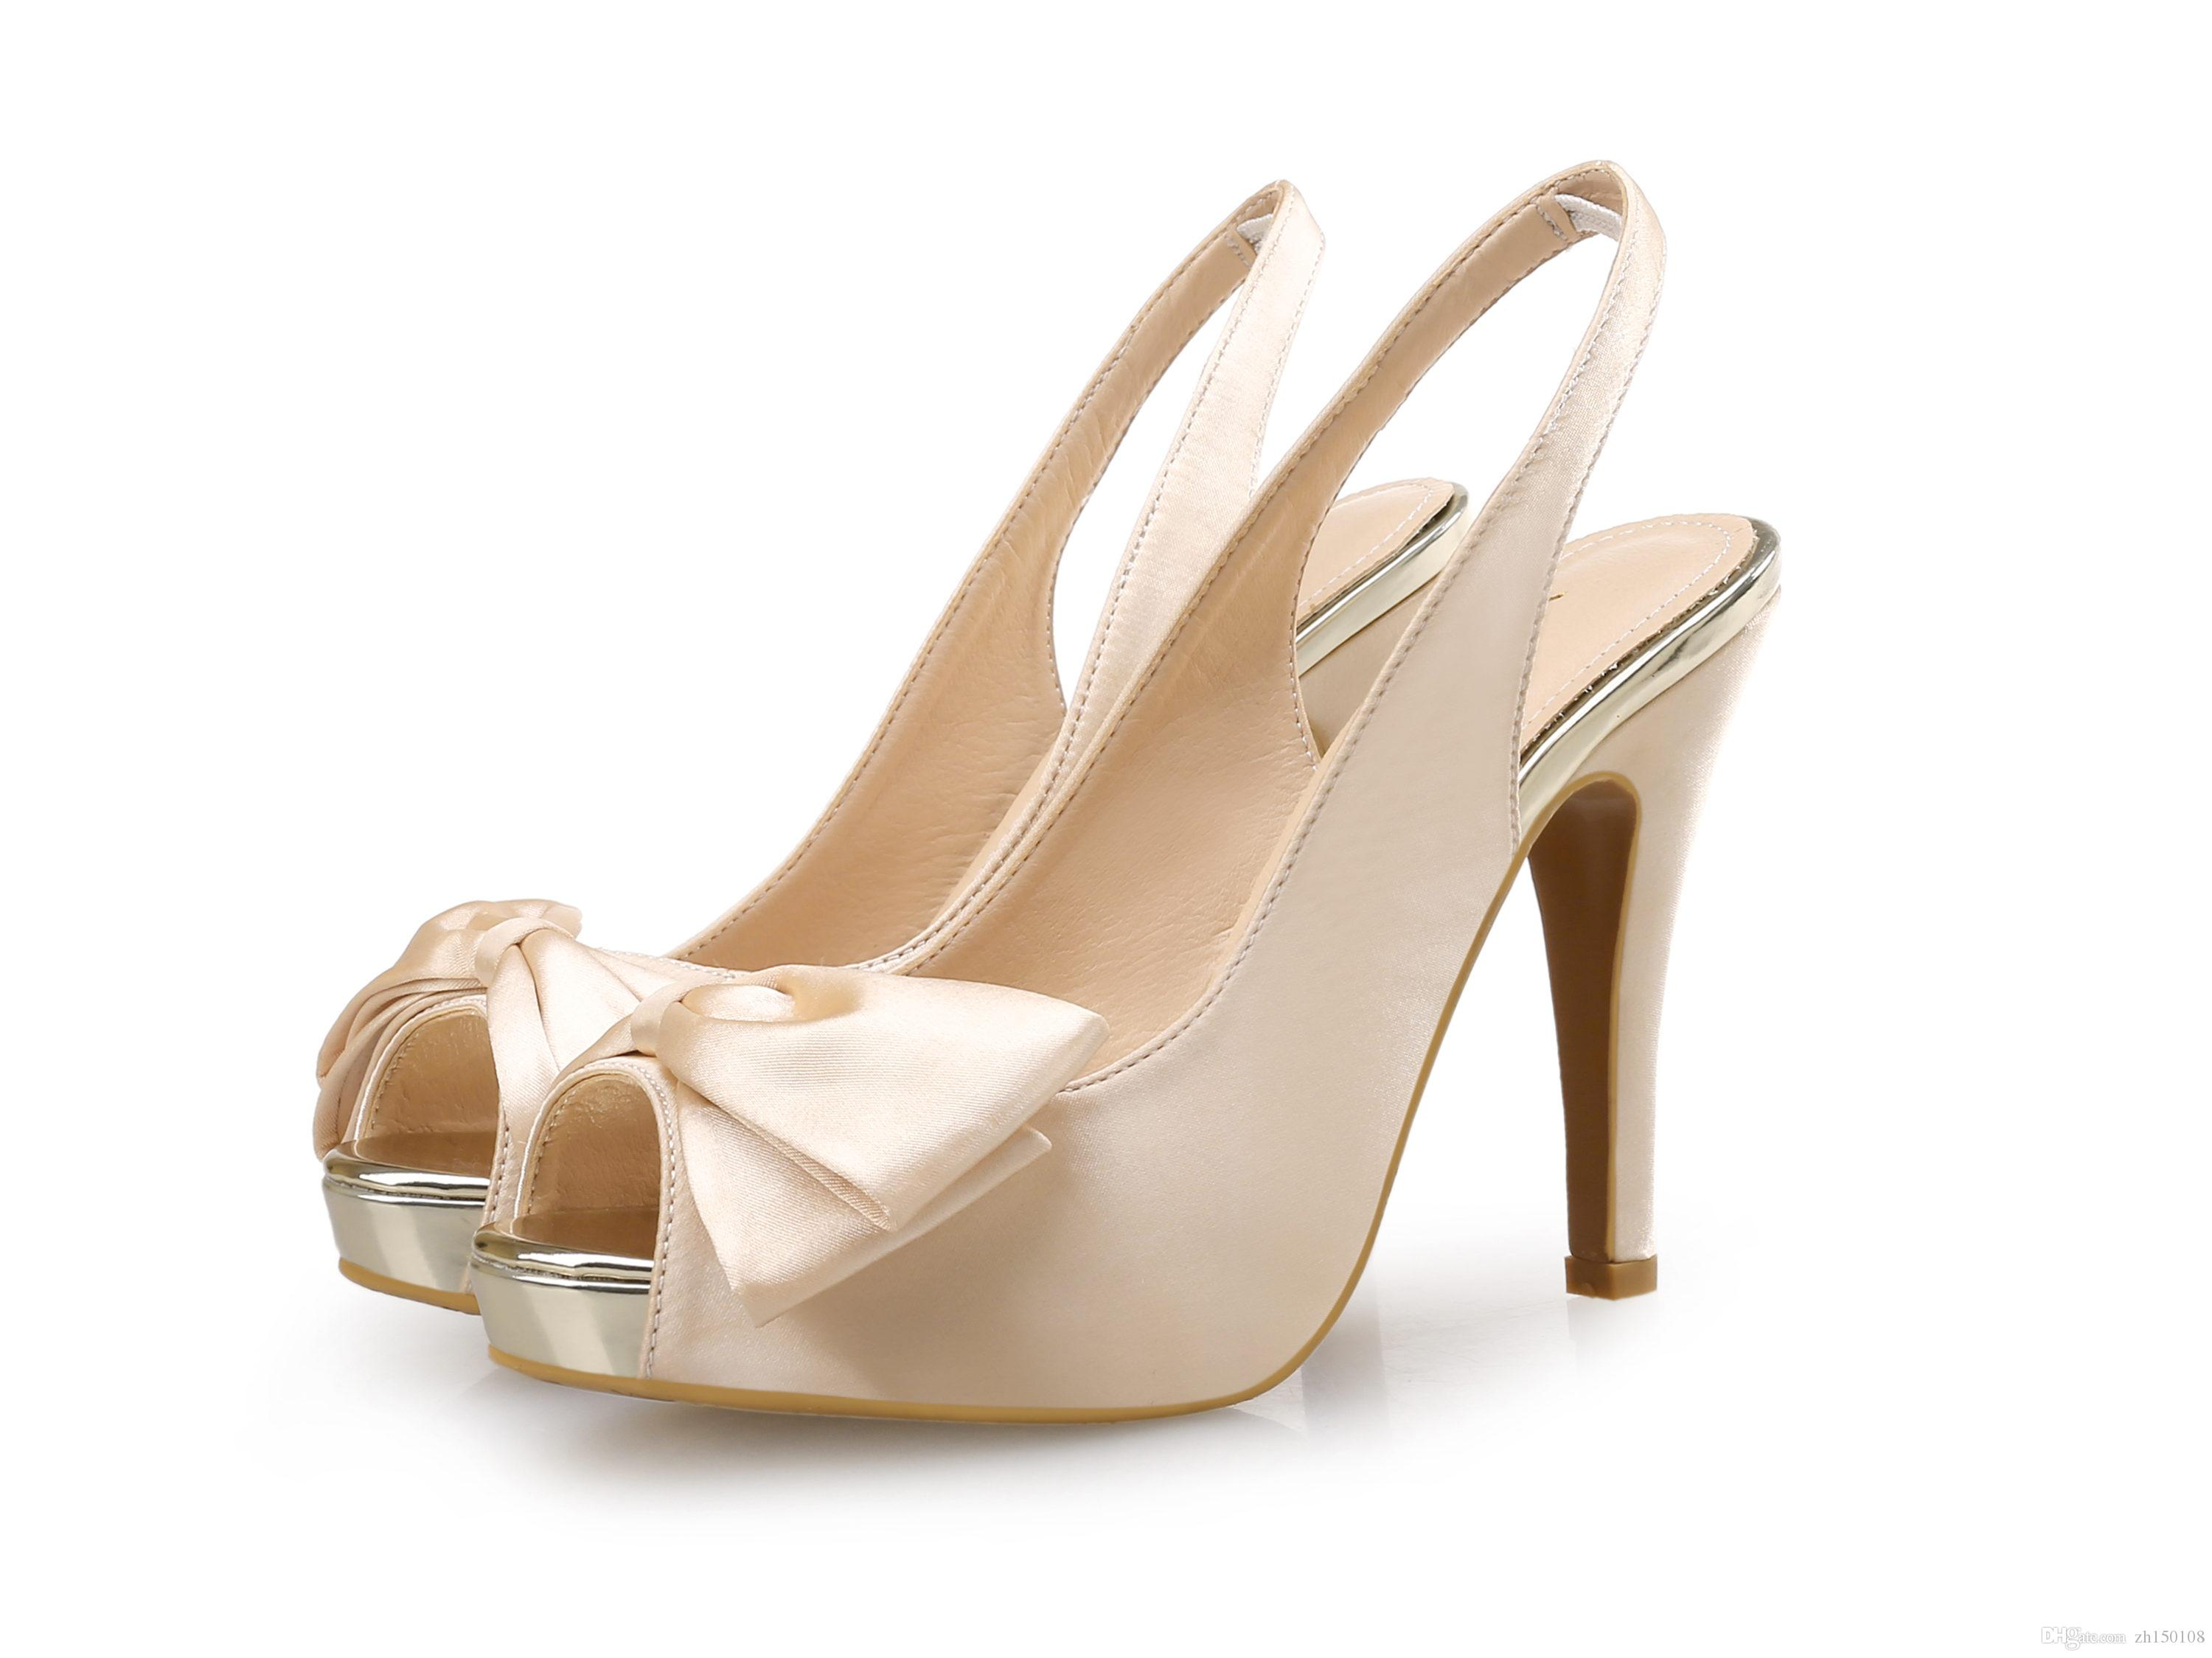 New Fashion Concise Nude Suede High Heels Sandals Women Ankle ...